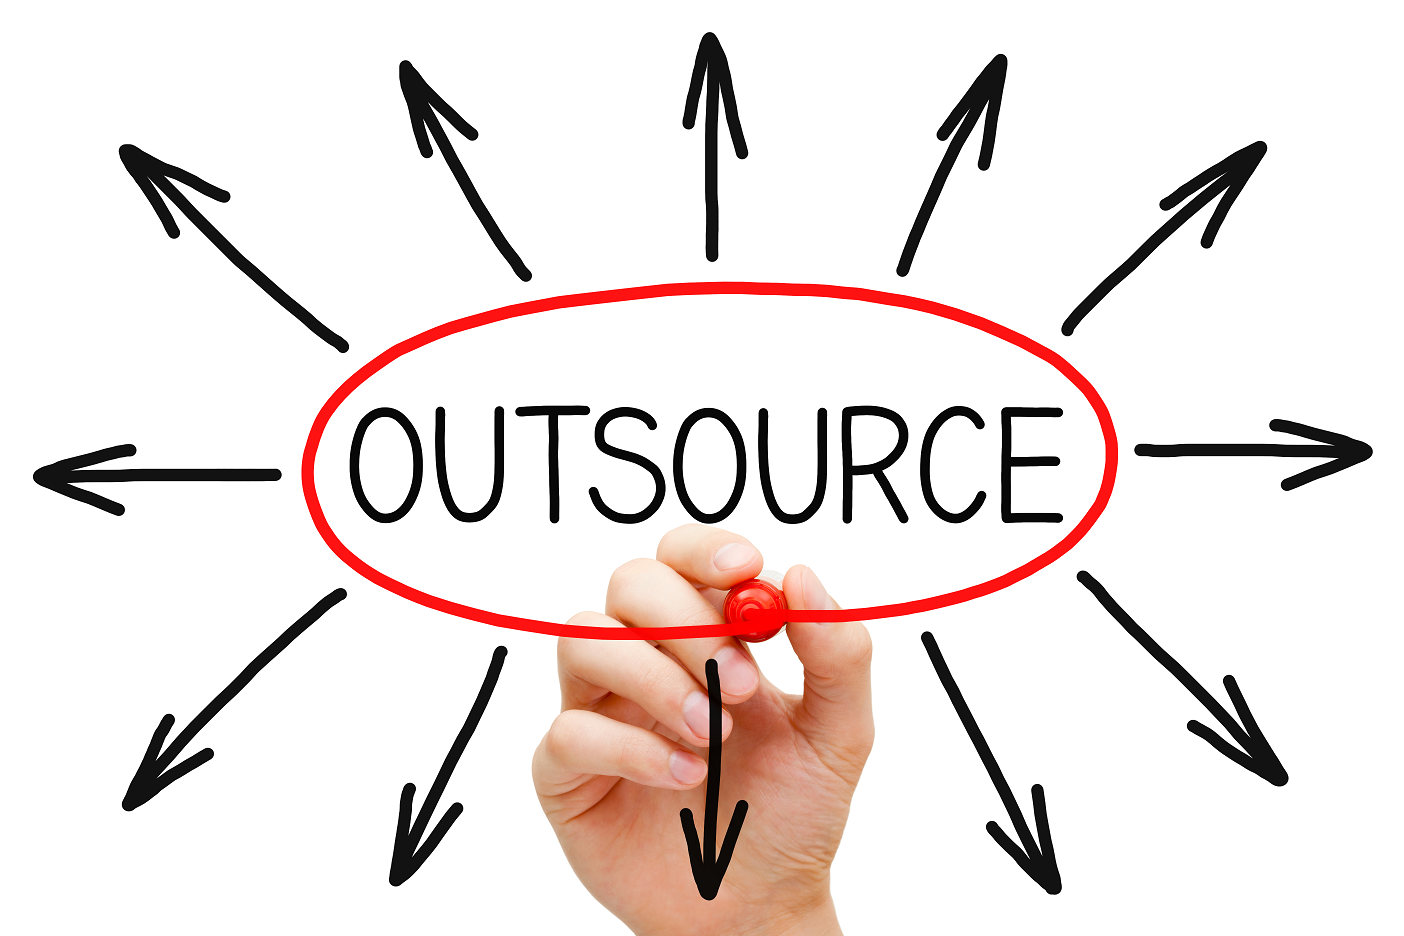 Should you refrain from Outsourcing things you are not good at?